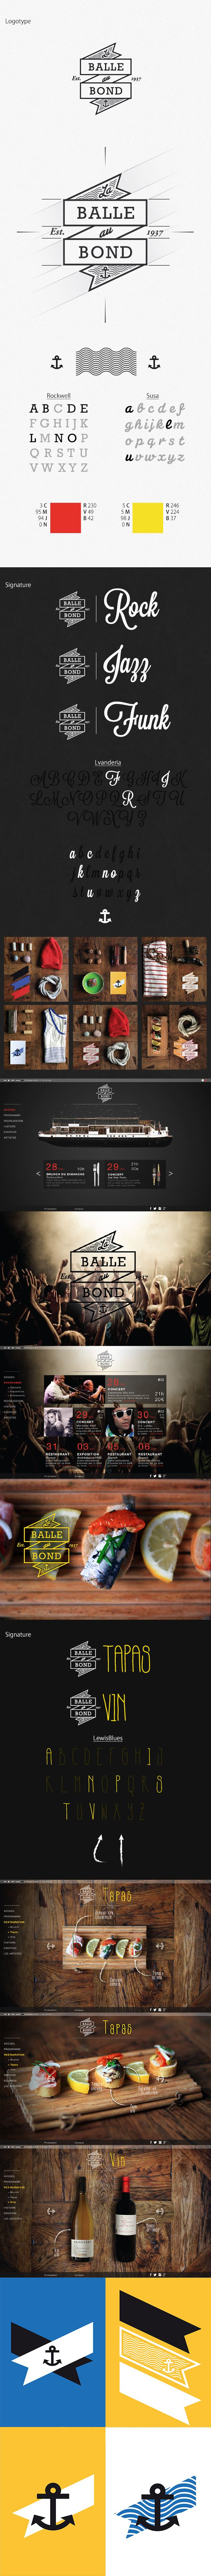 Balle au Bond by Thomas Roger-Veyer, via Behance | #stationary #corporate #design #corporatedesign #logo #identity #branding #marketing <<< repinned by an #advertising agency from #Hamburg / #Germany - www.BlickeDeeler.de